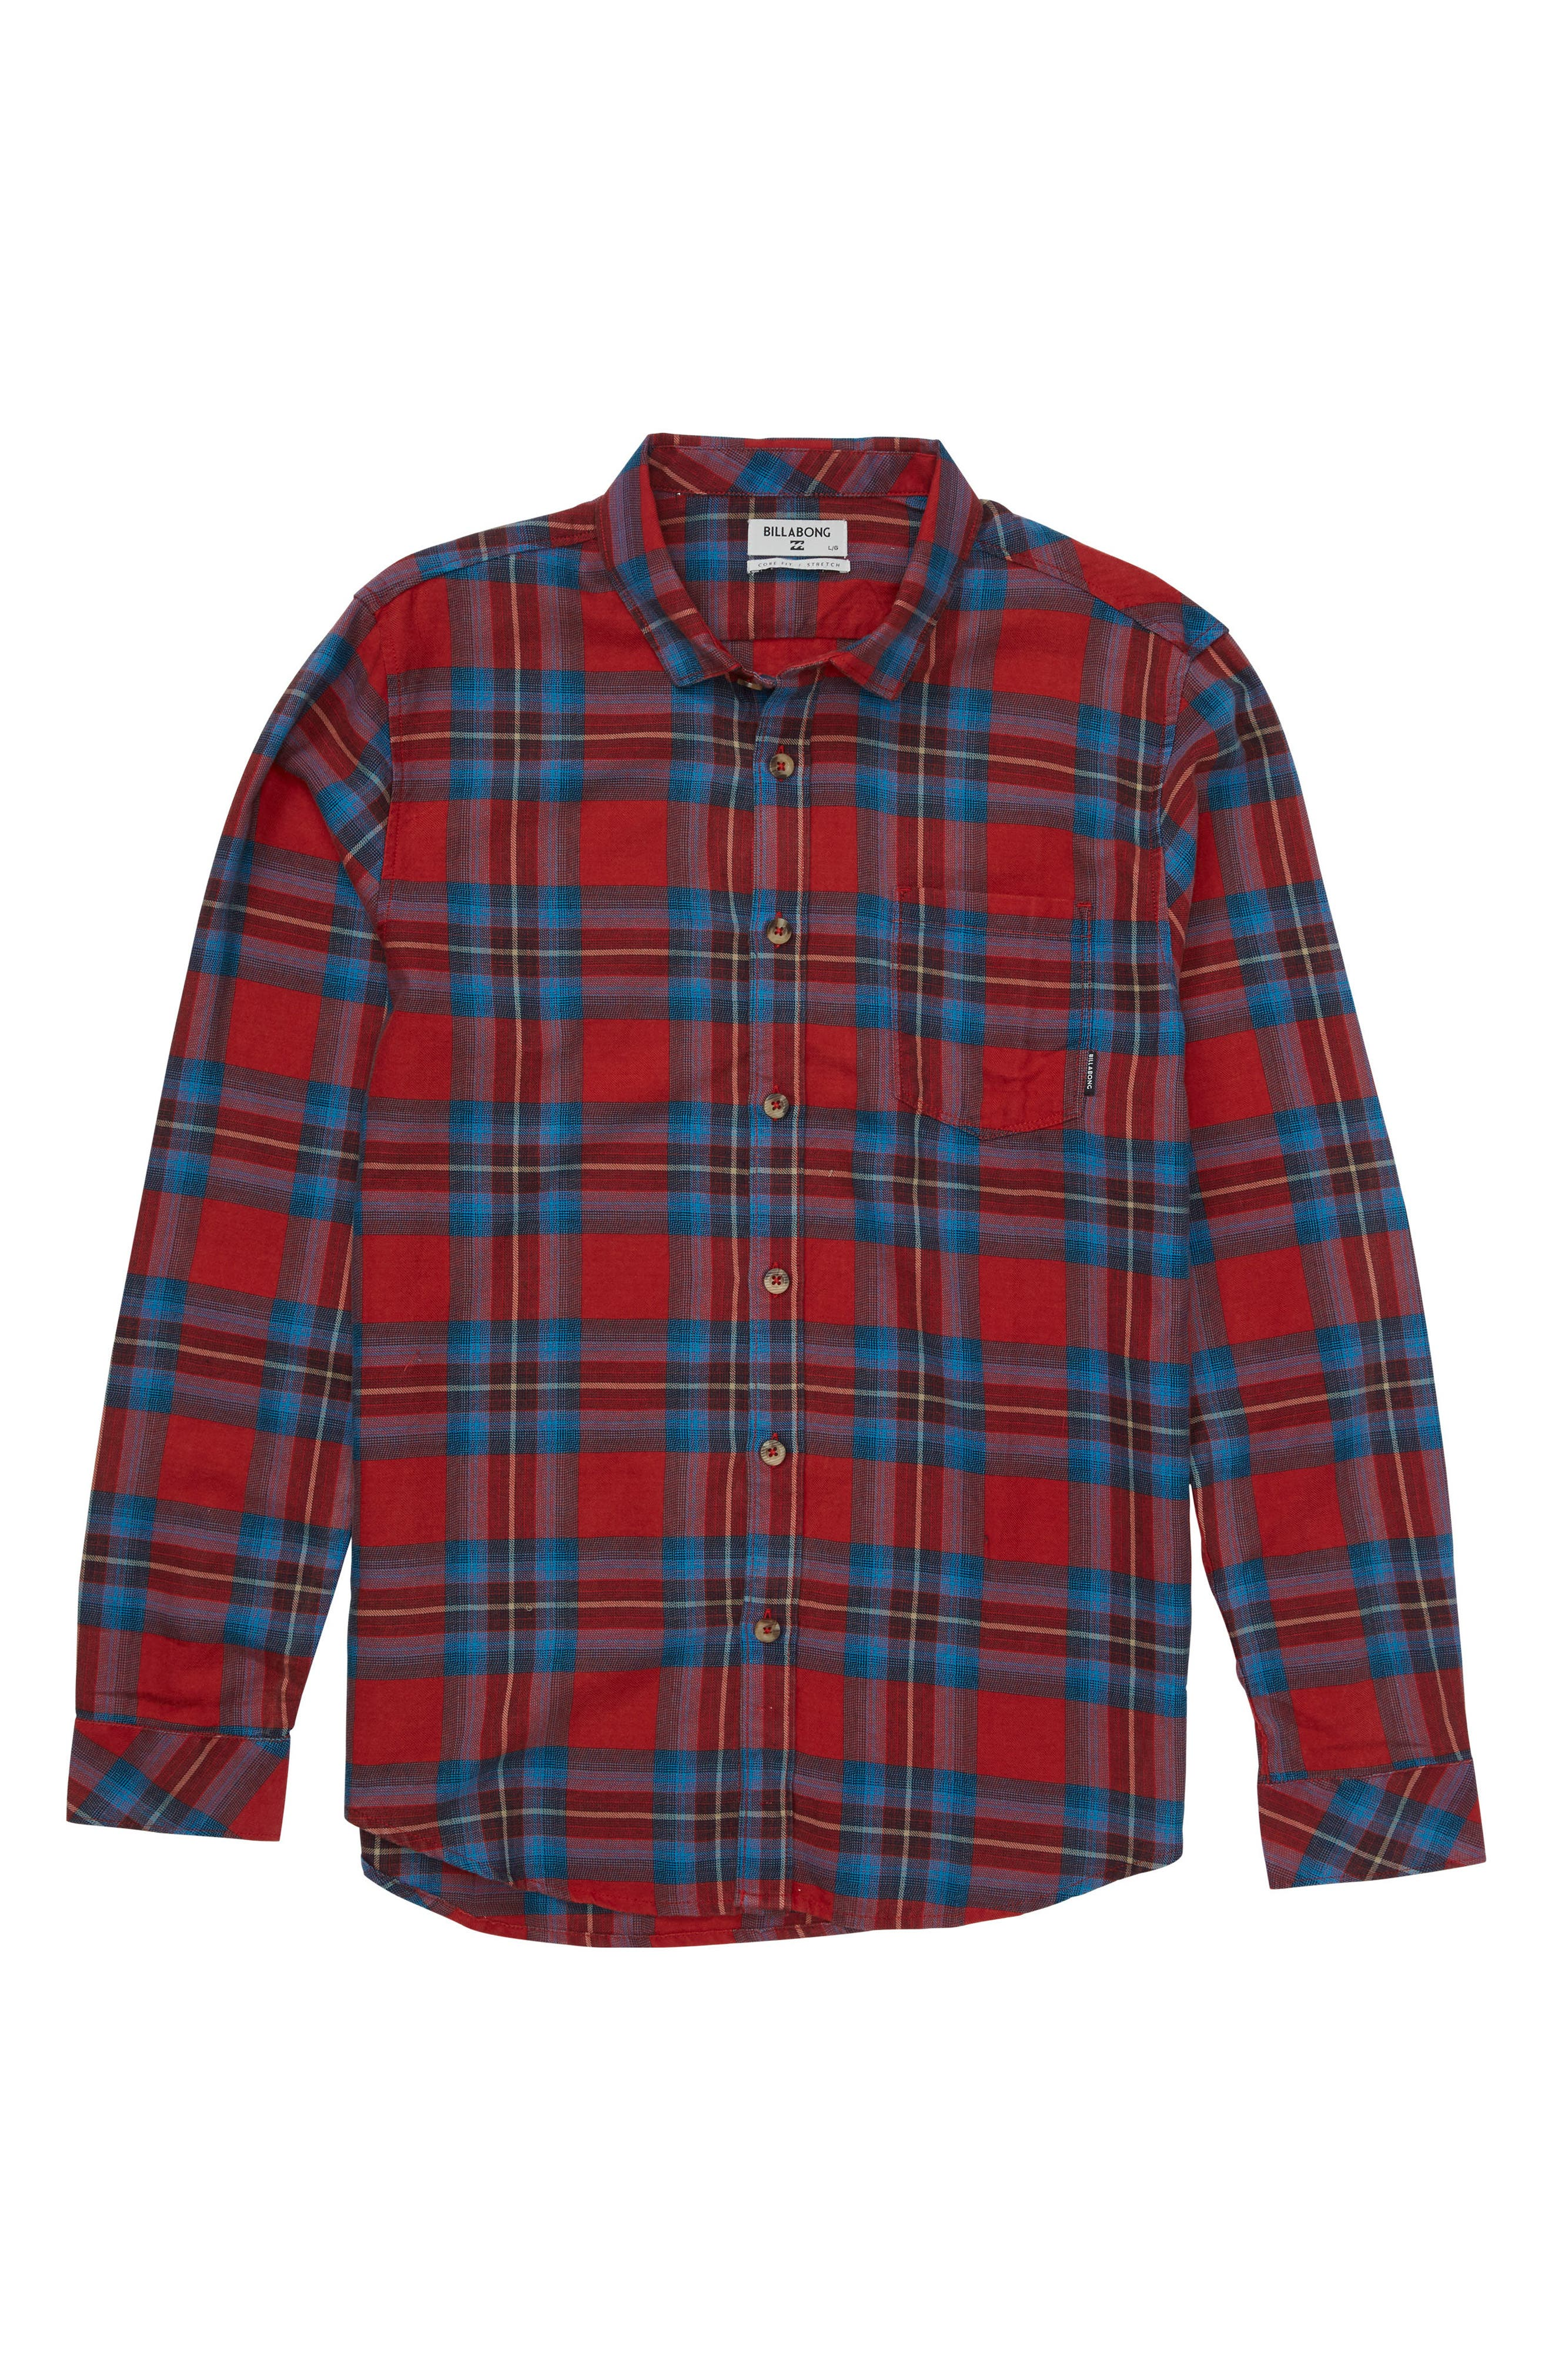 Freemont Plaid Flannel Shirt,                         Main,                         color, Red